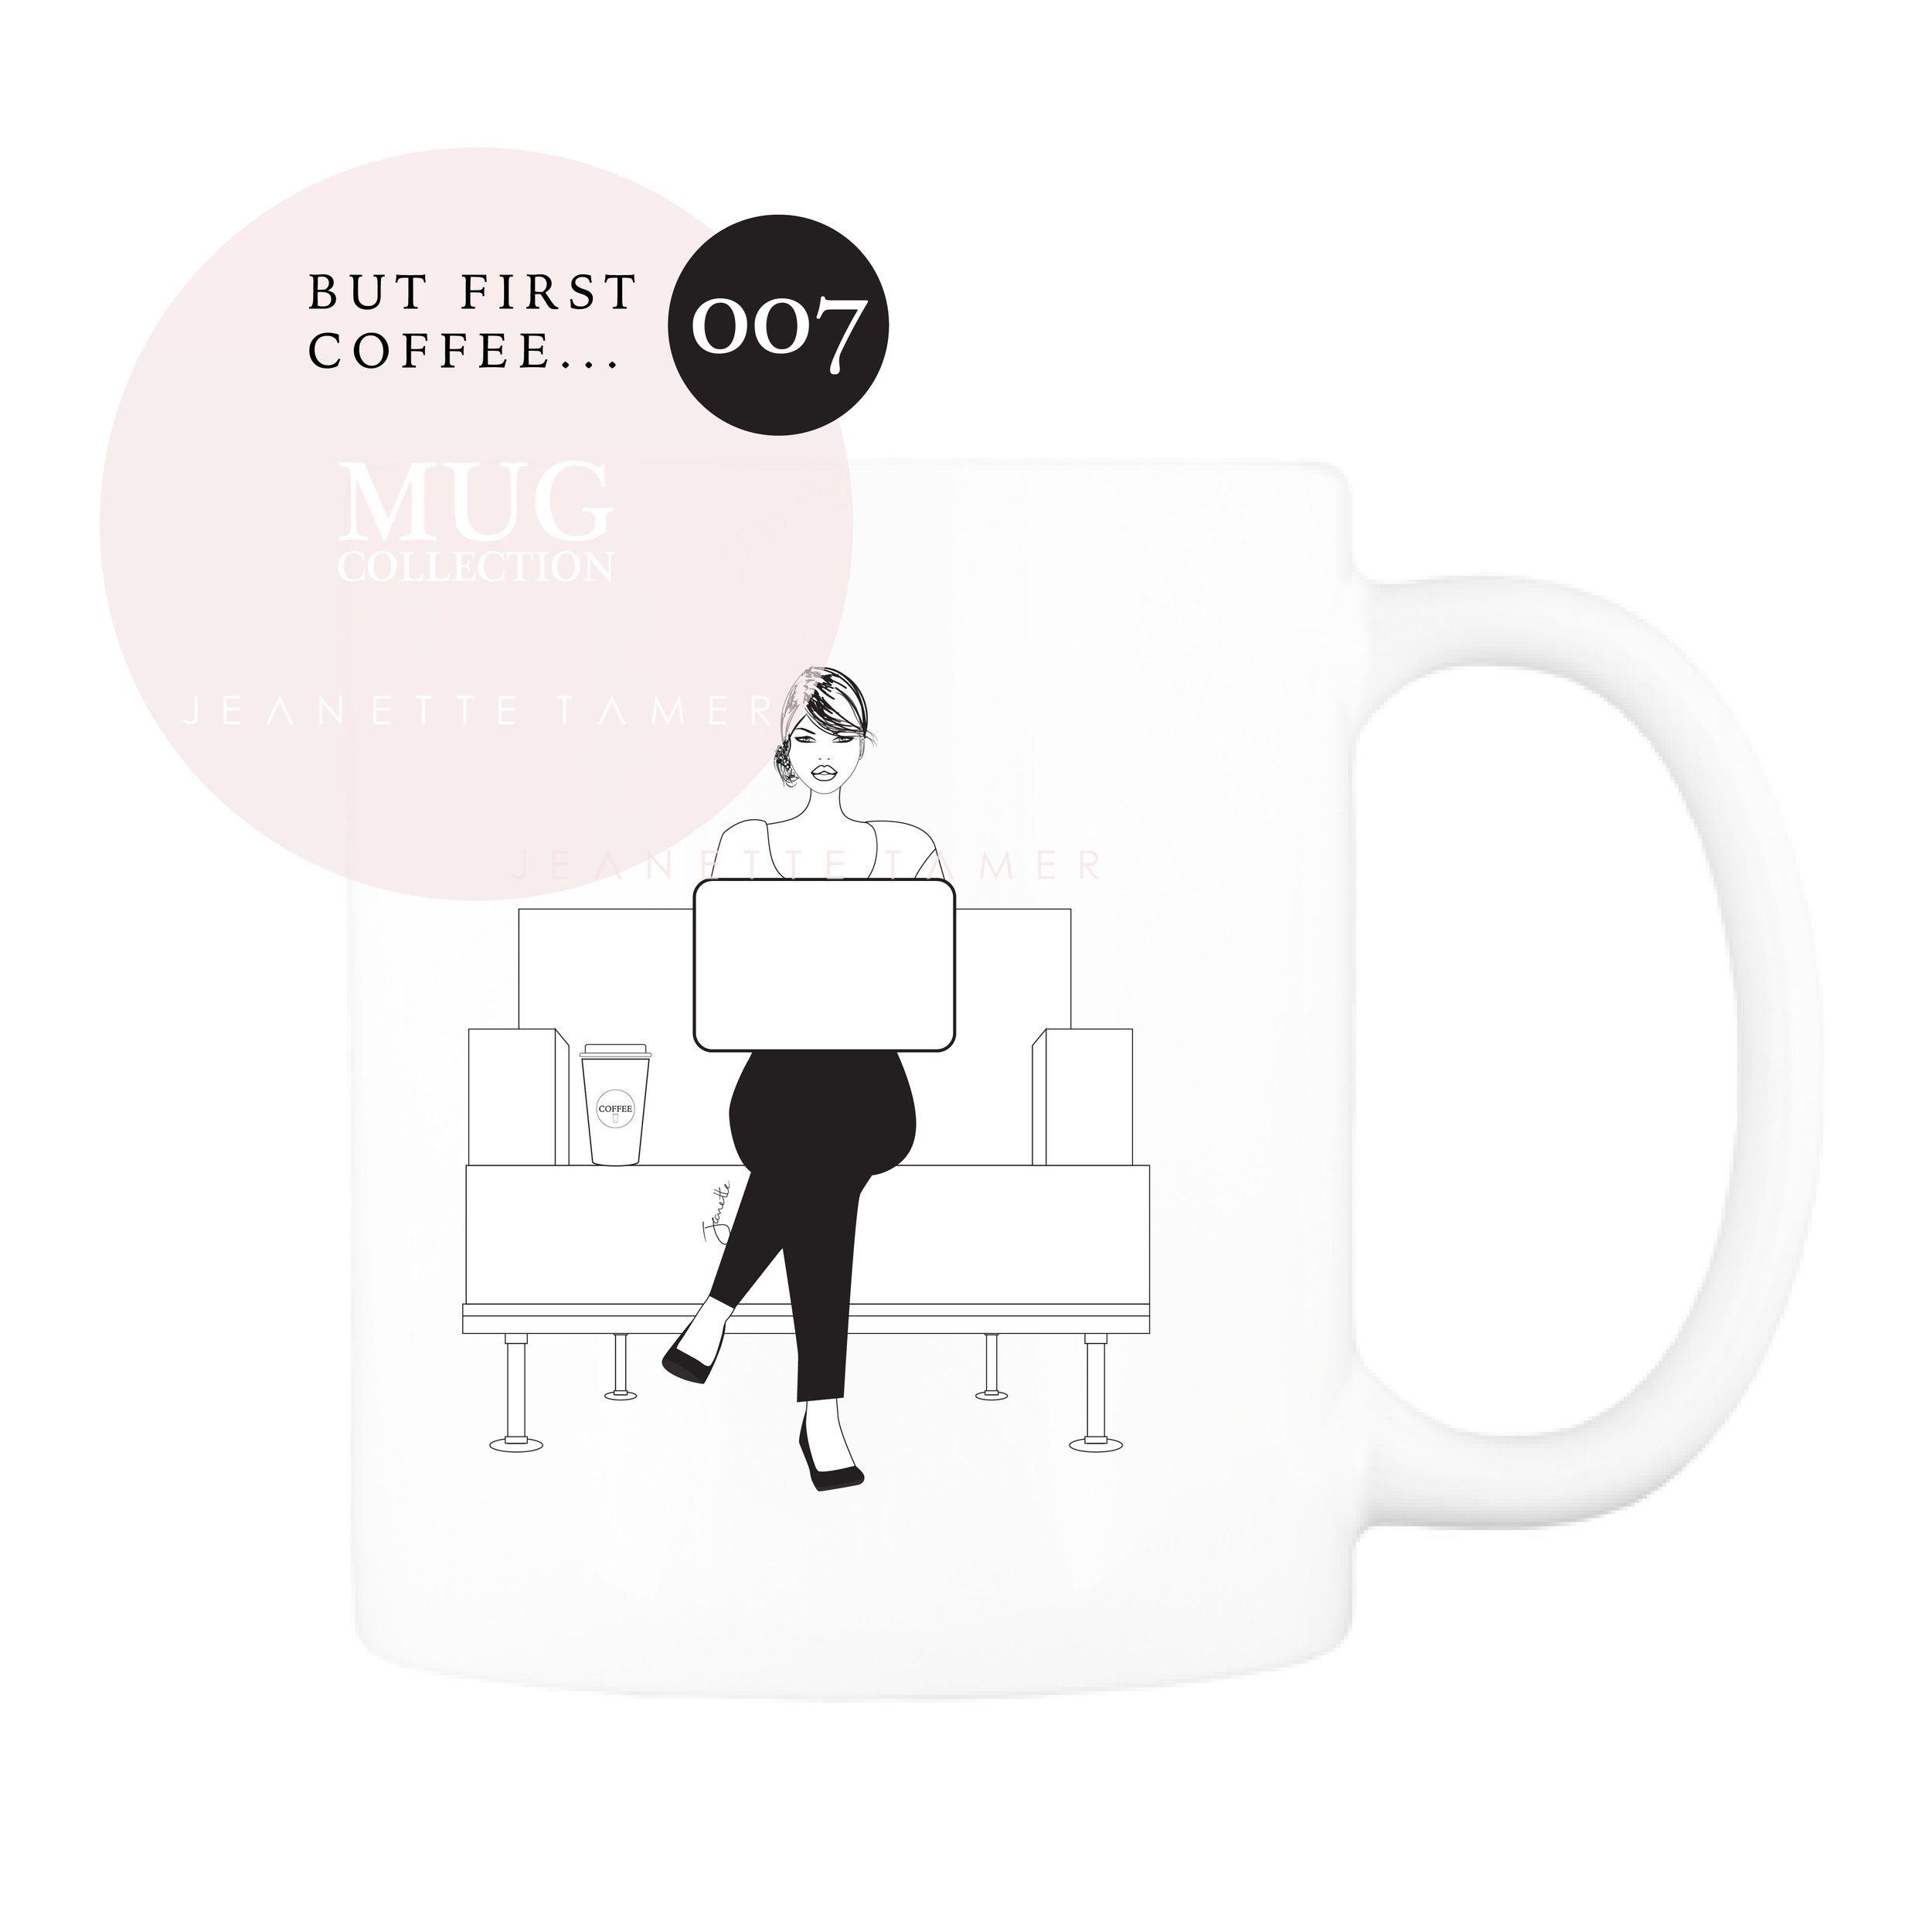 But First Coffee 007